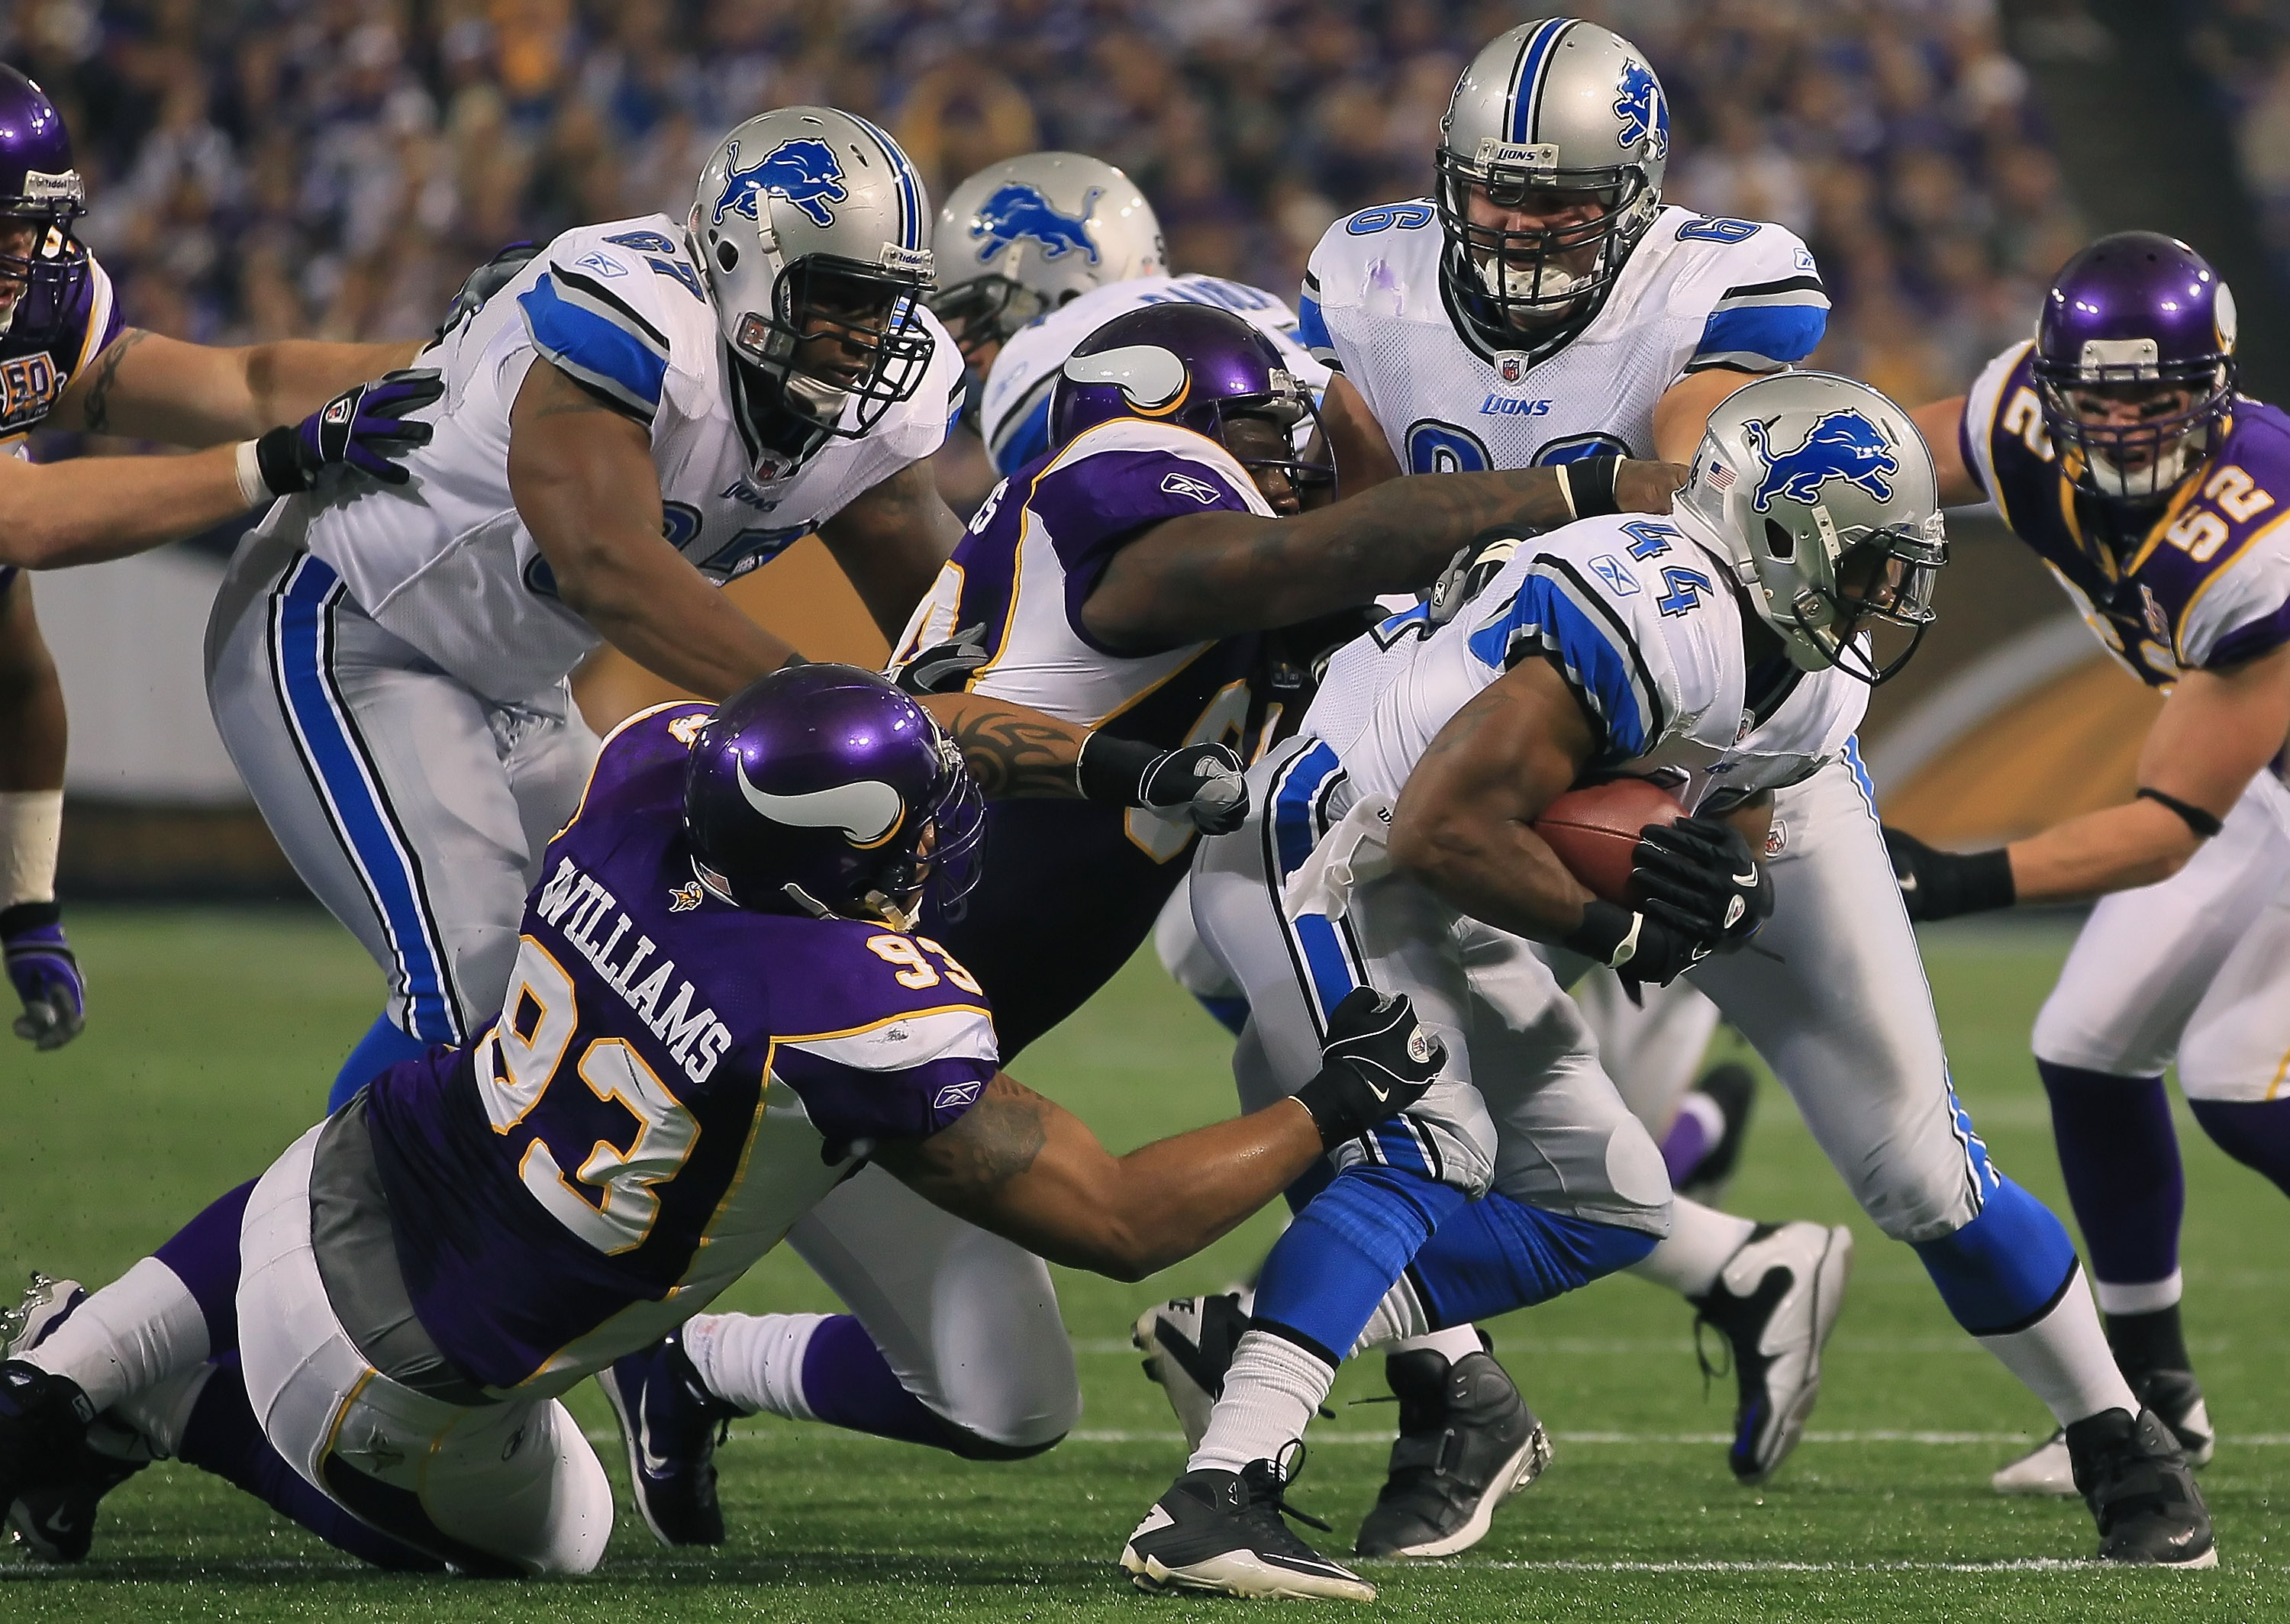 MINNEAPOLIS - SEPTEMBER 26:  Running back Jahvid Best #44 of the Detroit Lions is pursued by Kevin Williams #93 of the Minnesota Vikings during the first half at Mall of America Field on September 26, 2010 in Minneapolis, Minnesota. The Vikings defeated t